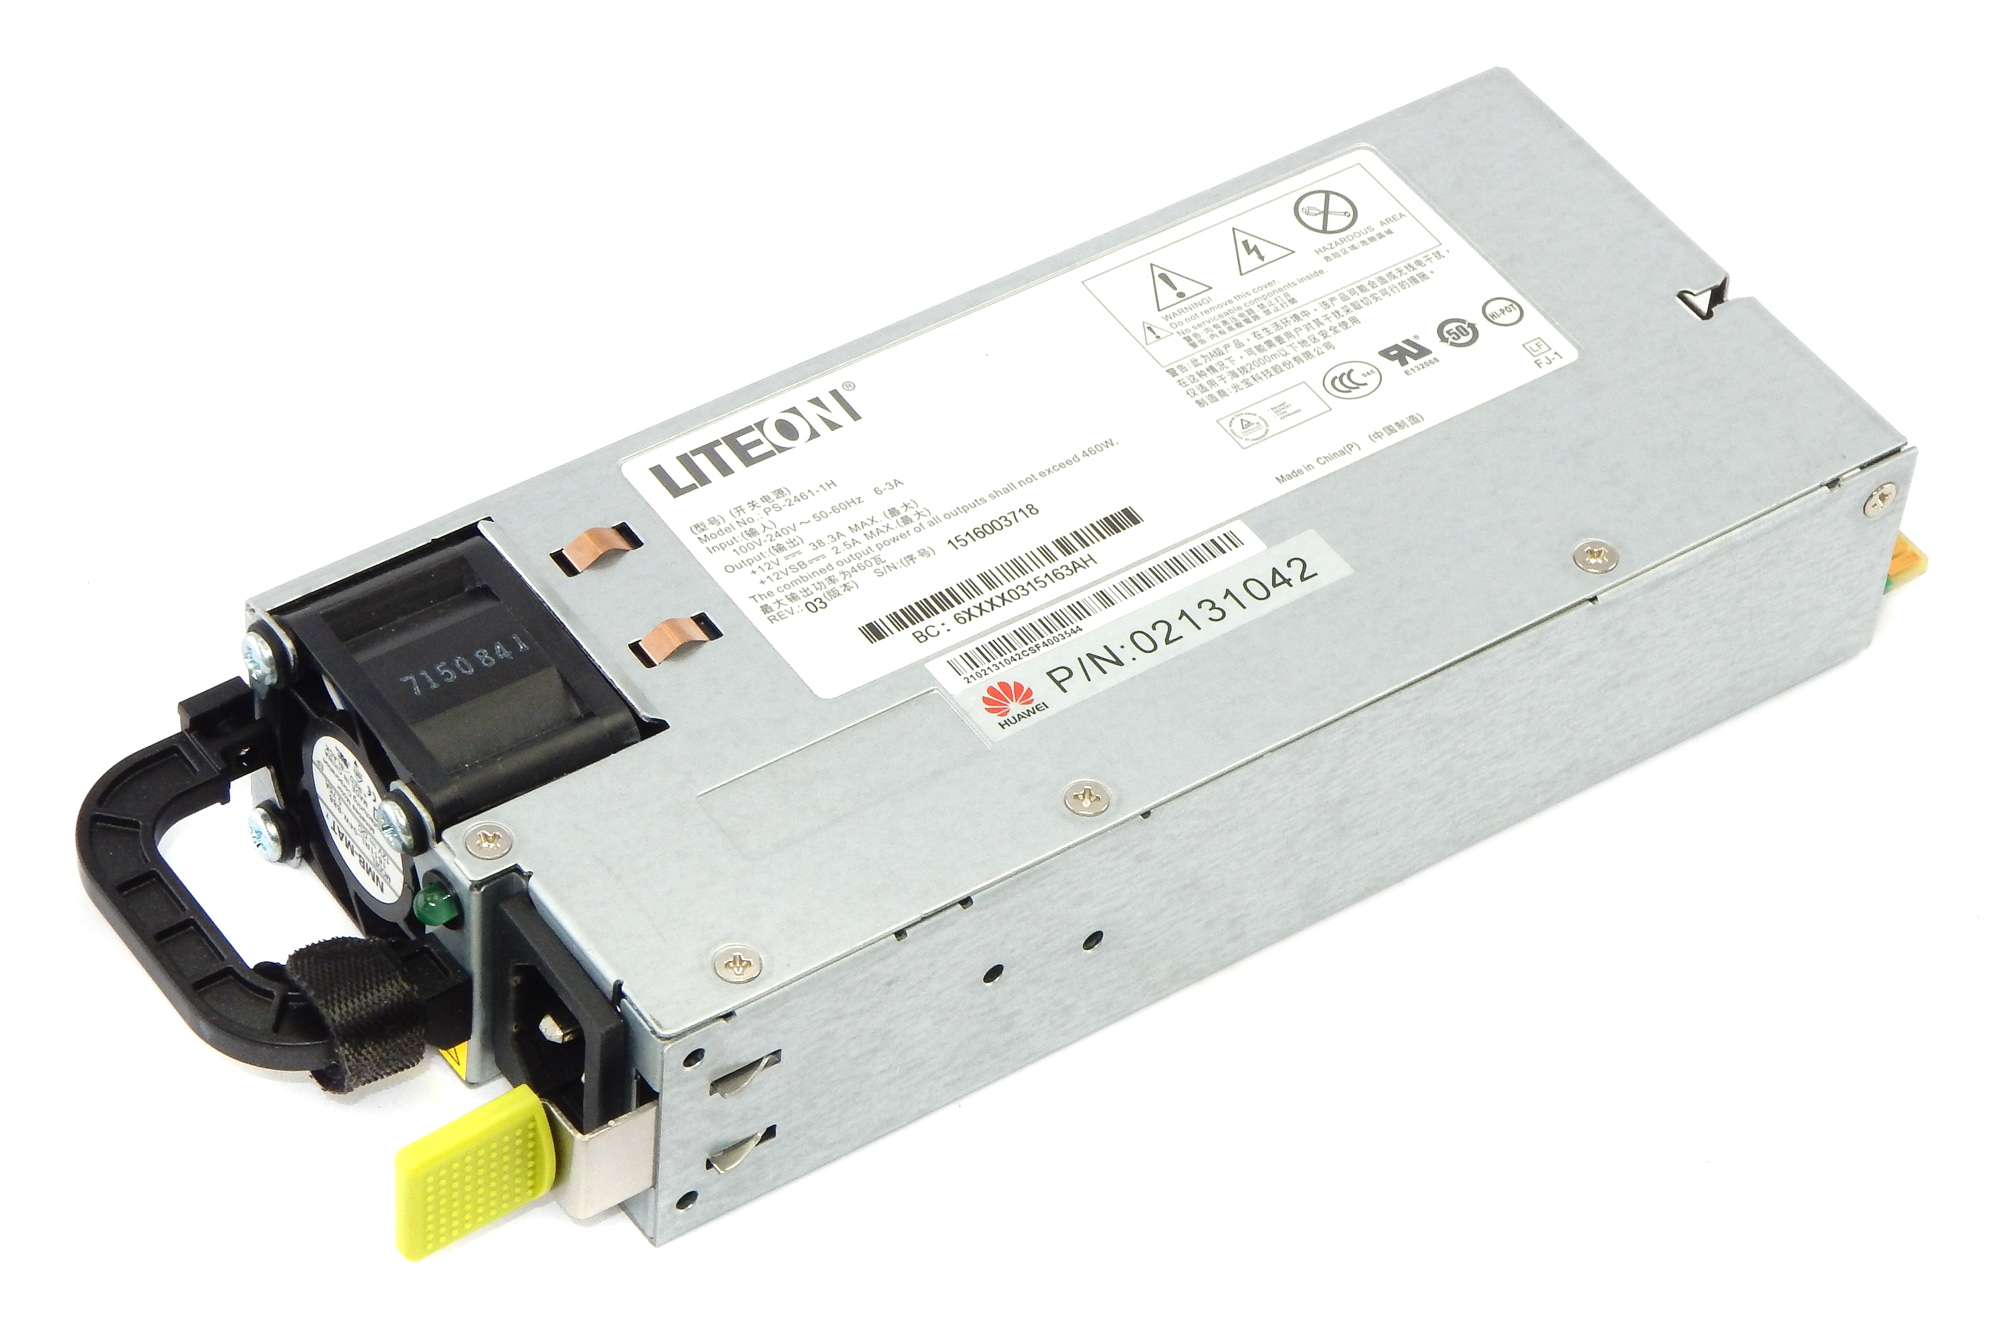 LiteOn PS-2461-1H 460W Server Power Supply / Huawei p/n 02131042